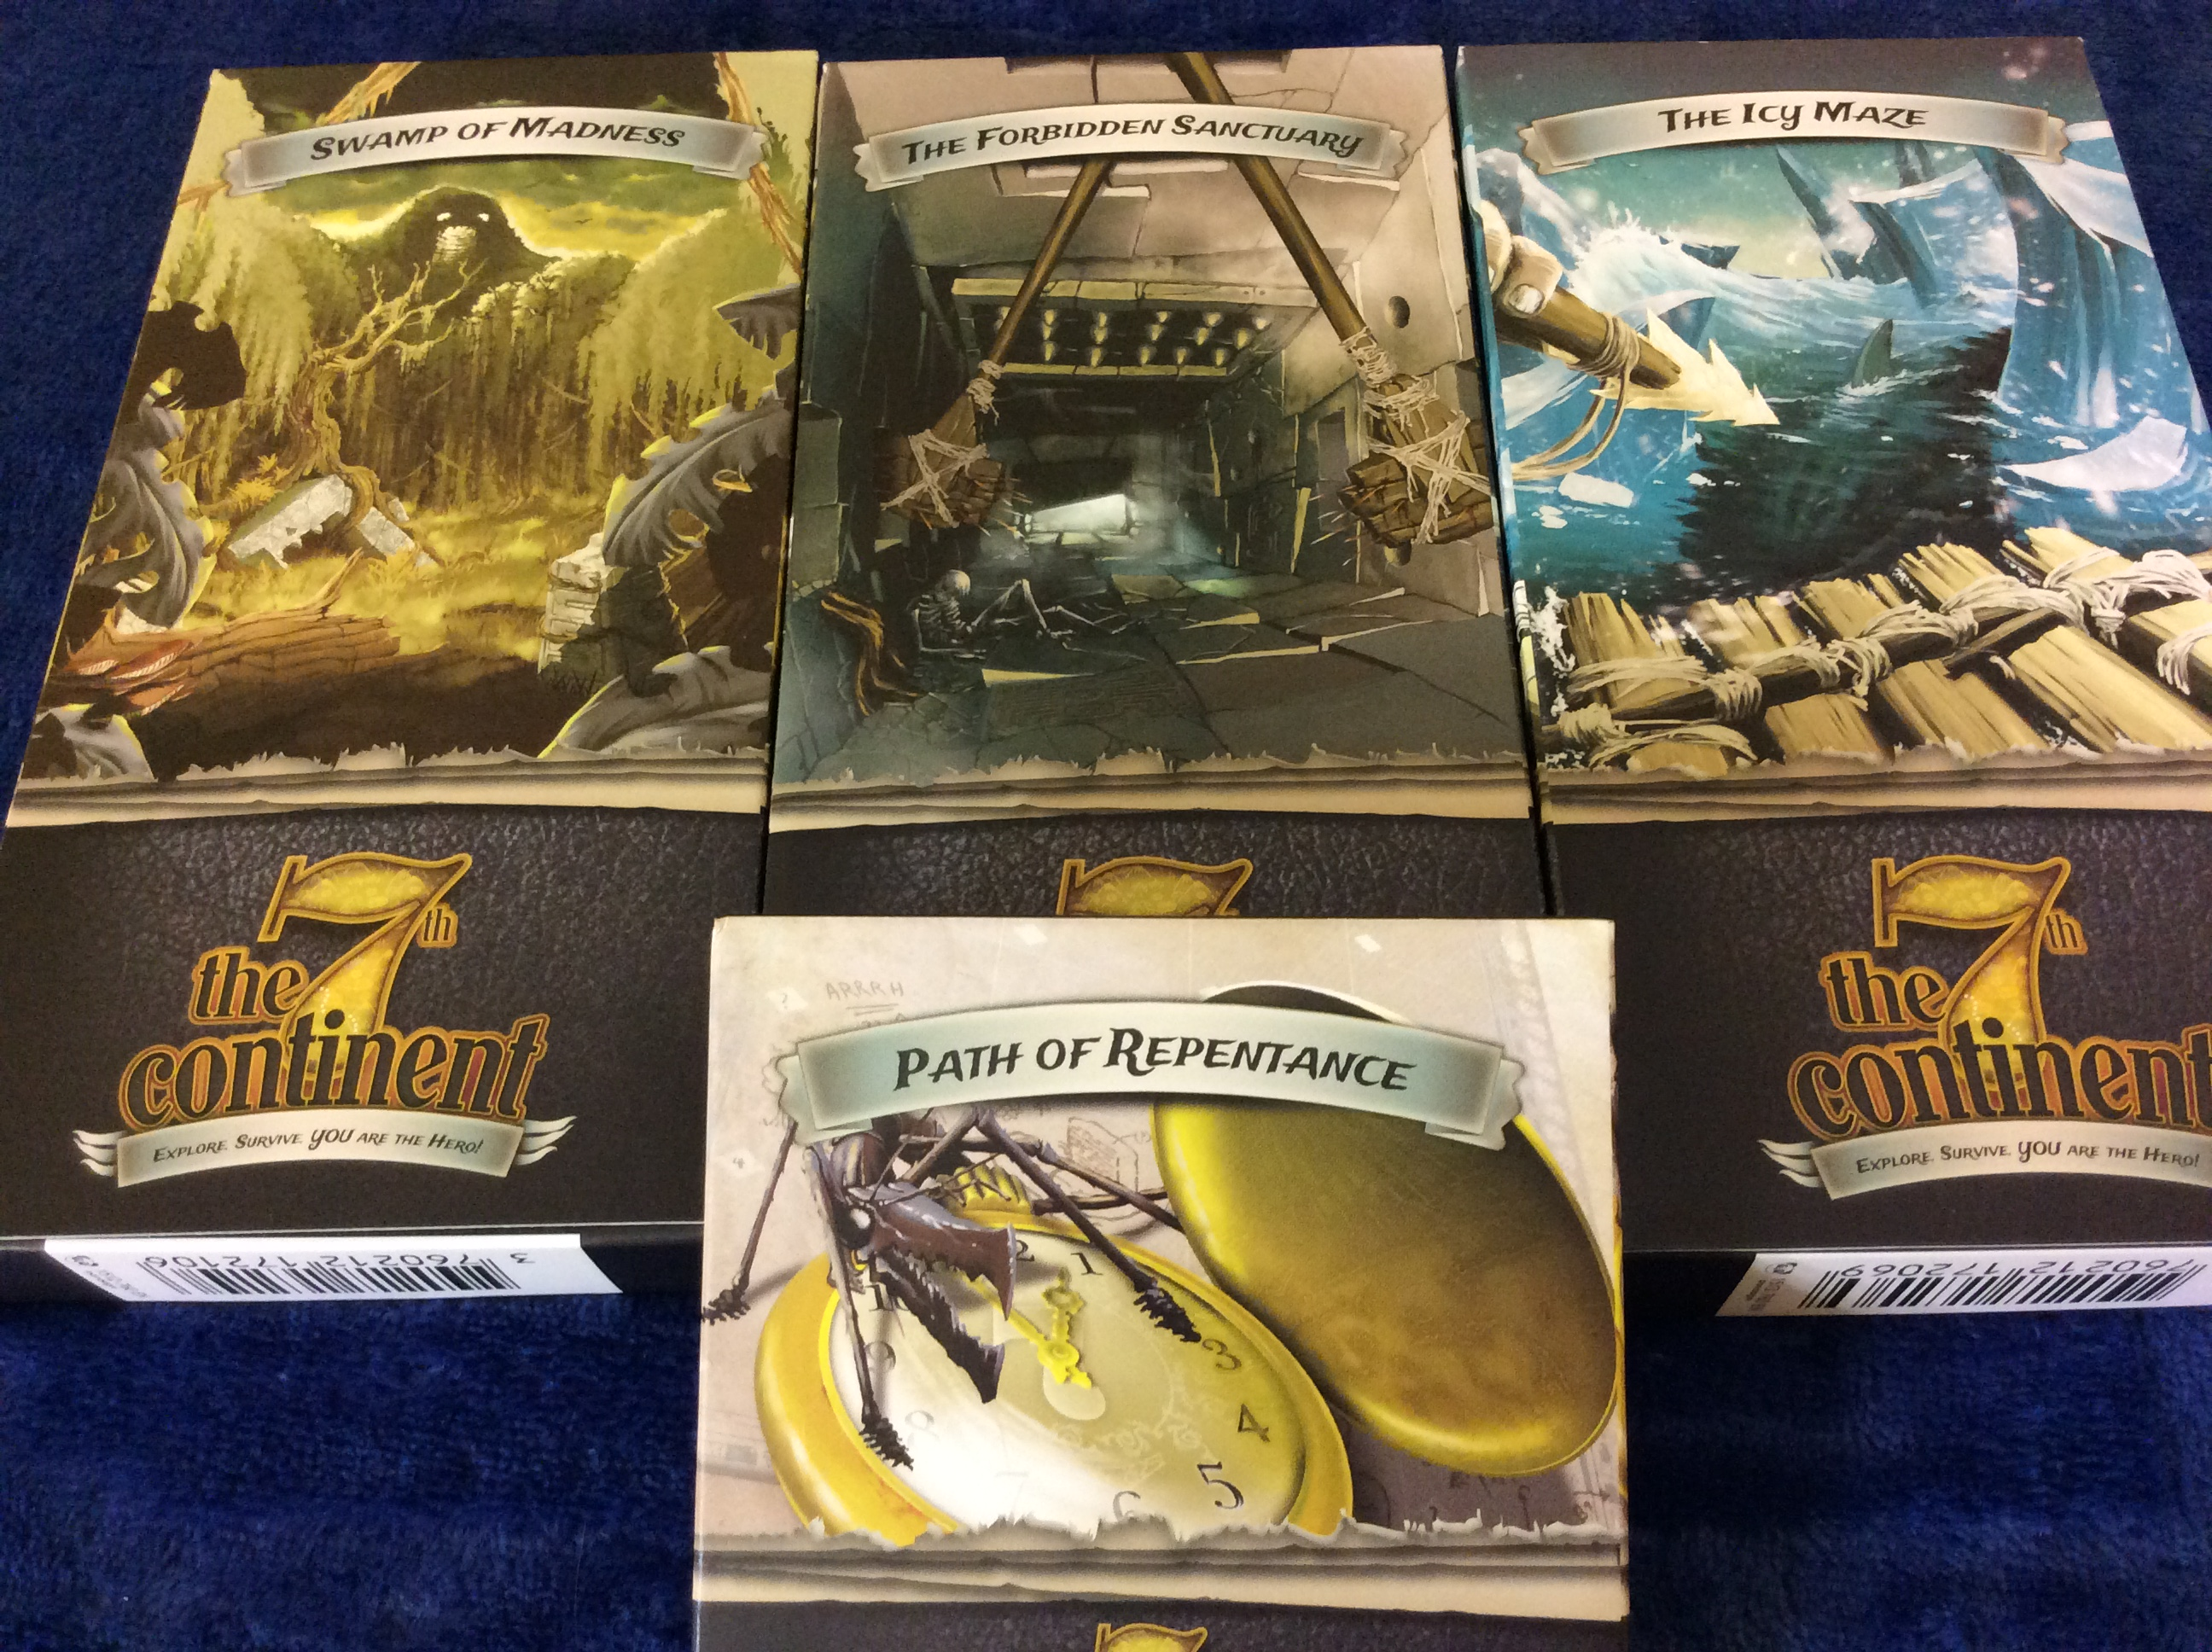 Session Report: The 7th Continent and Spoiler Sensitivity